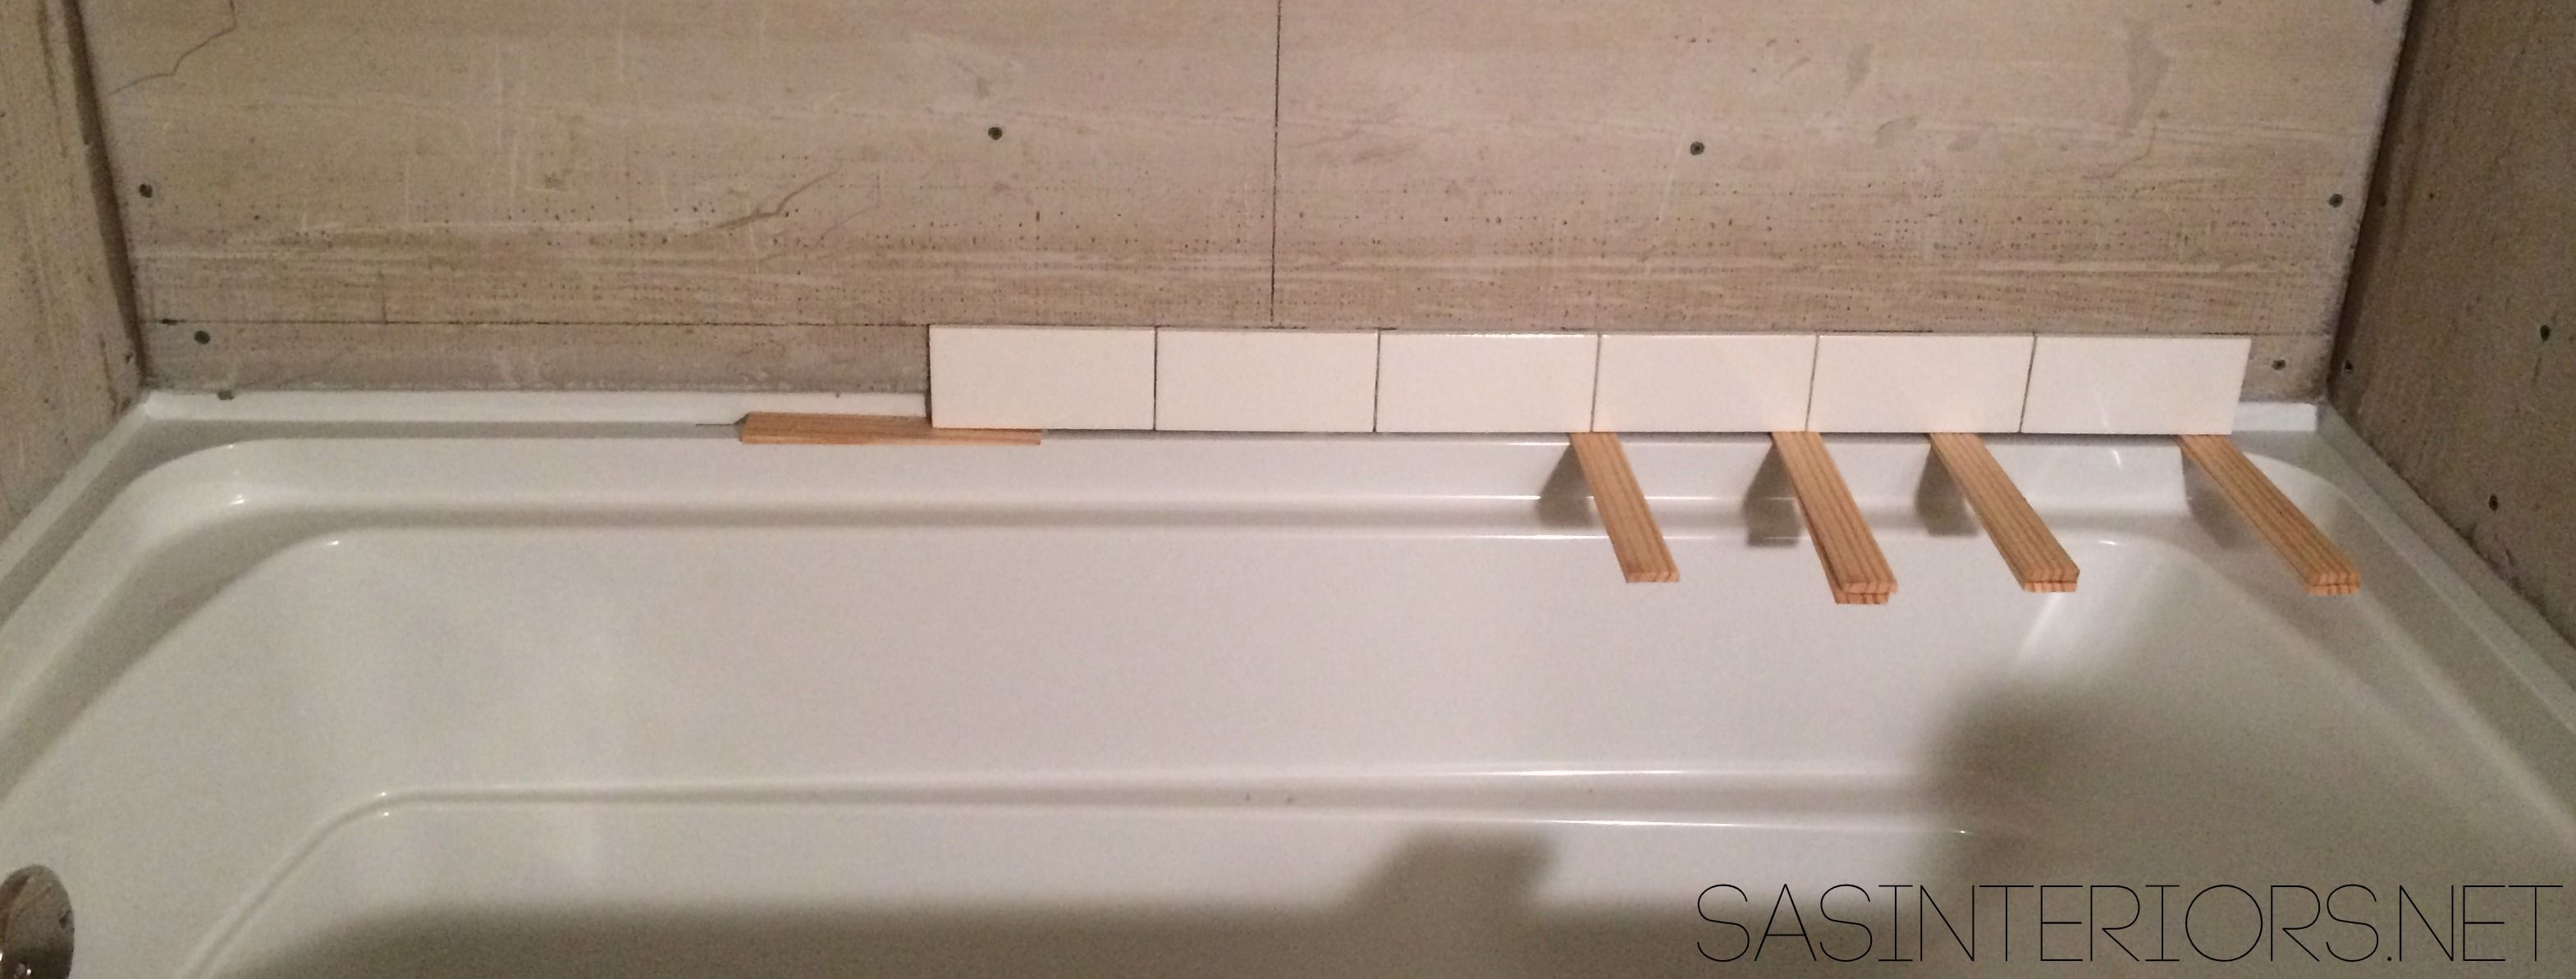 HowTo Tile And Grout A Bathroom Tub Area Tips Tricks To Do It - Bathroom tub makeover